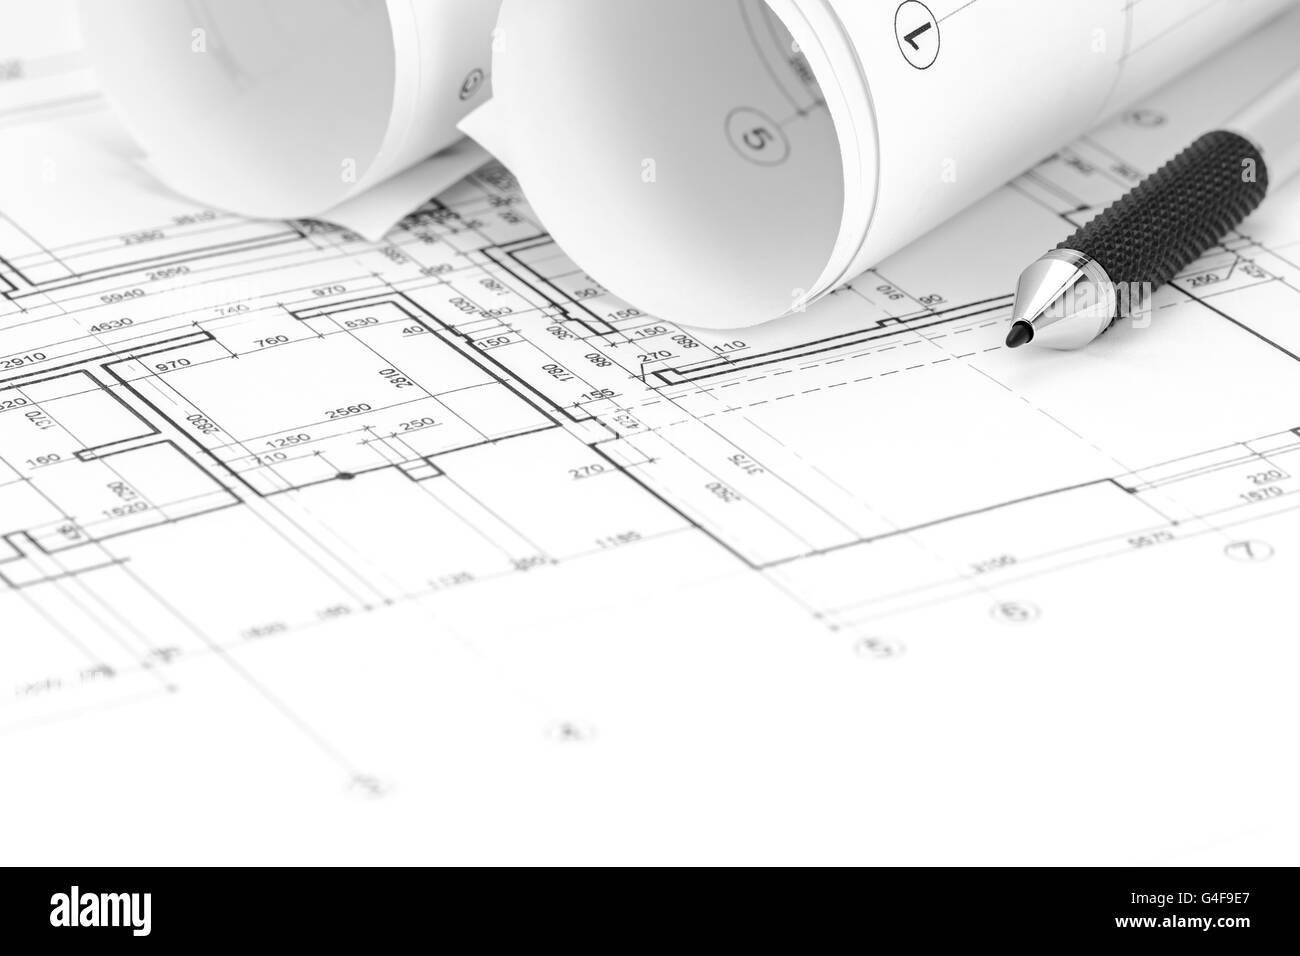 Architect workspace with floor plan blueprint roll and pencil architect workspace with floor plan blueprint roll and pencil malvernweather Image collections